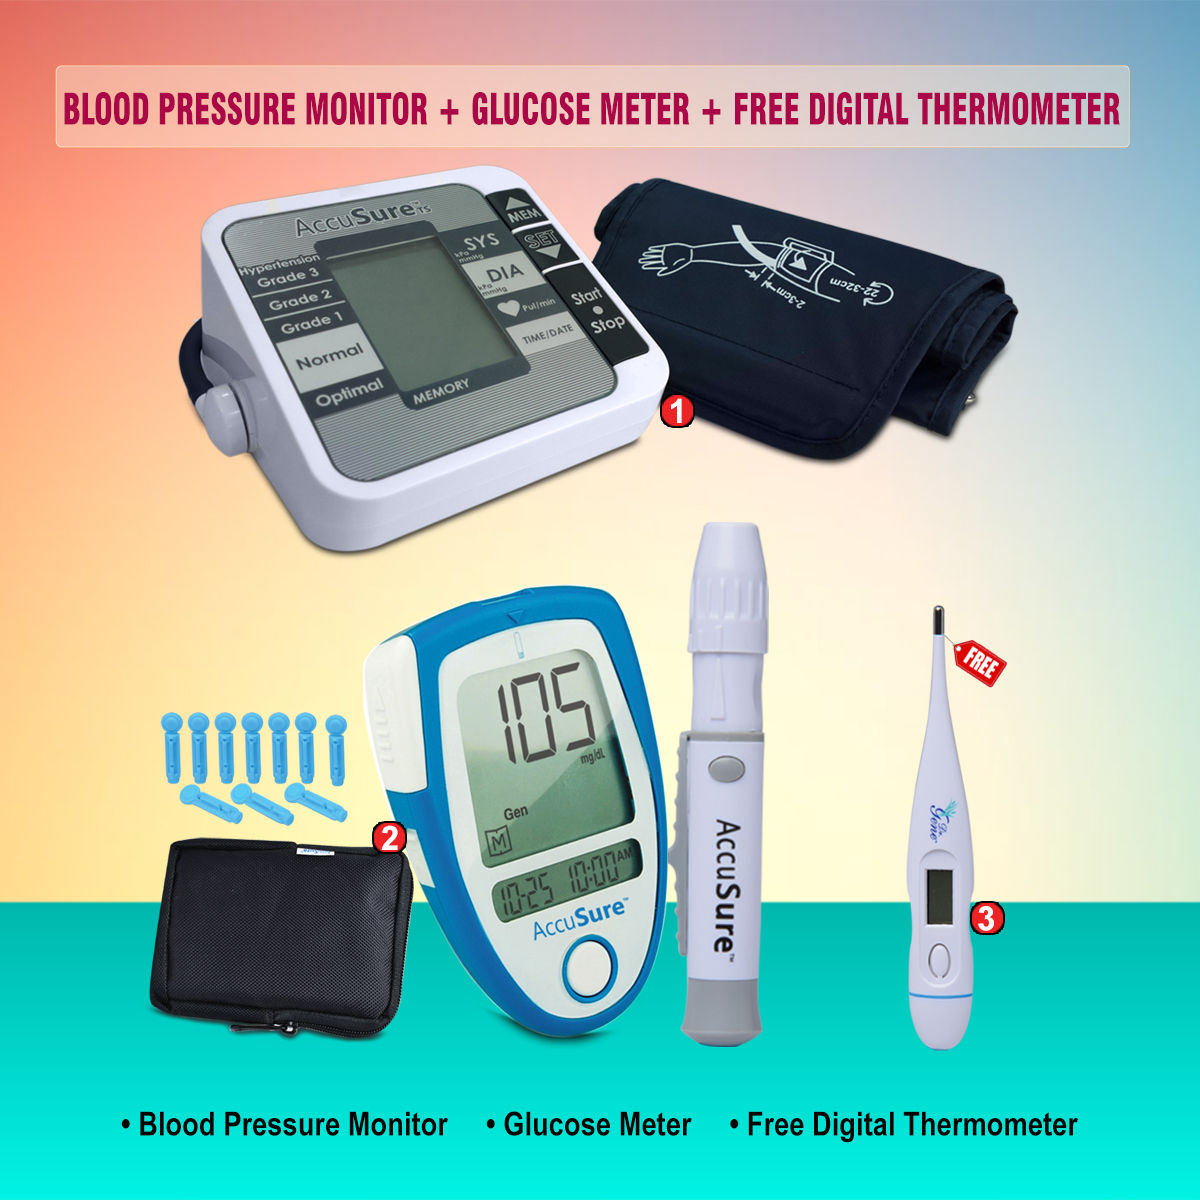 d6e01127836 Buy Blood Pressure Monitor + Glucose Meter + Free Digital Thermometer Online  at Best Price in India on Naaptol.com